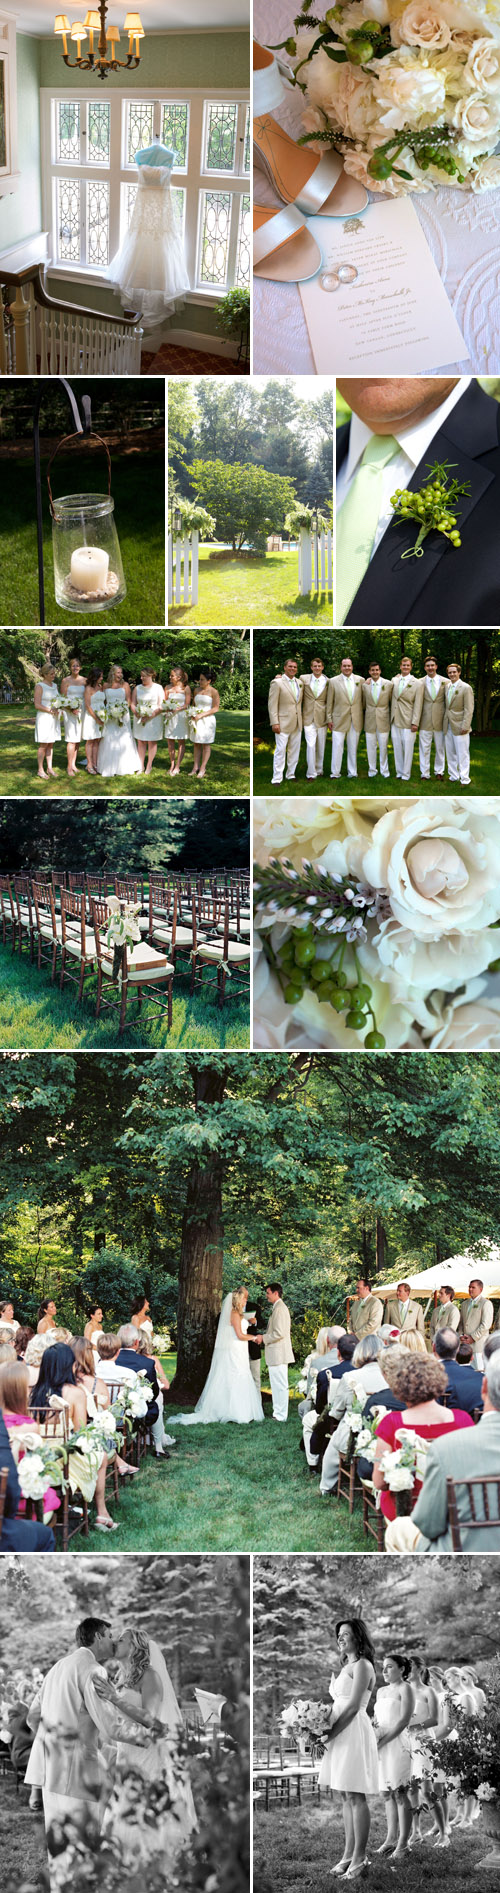 elegant backyard wedding in New Canaan, Connecticut, white, ivory and green wedding color palette, photos by Karen Hill Photography